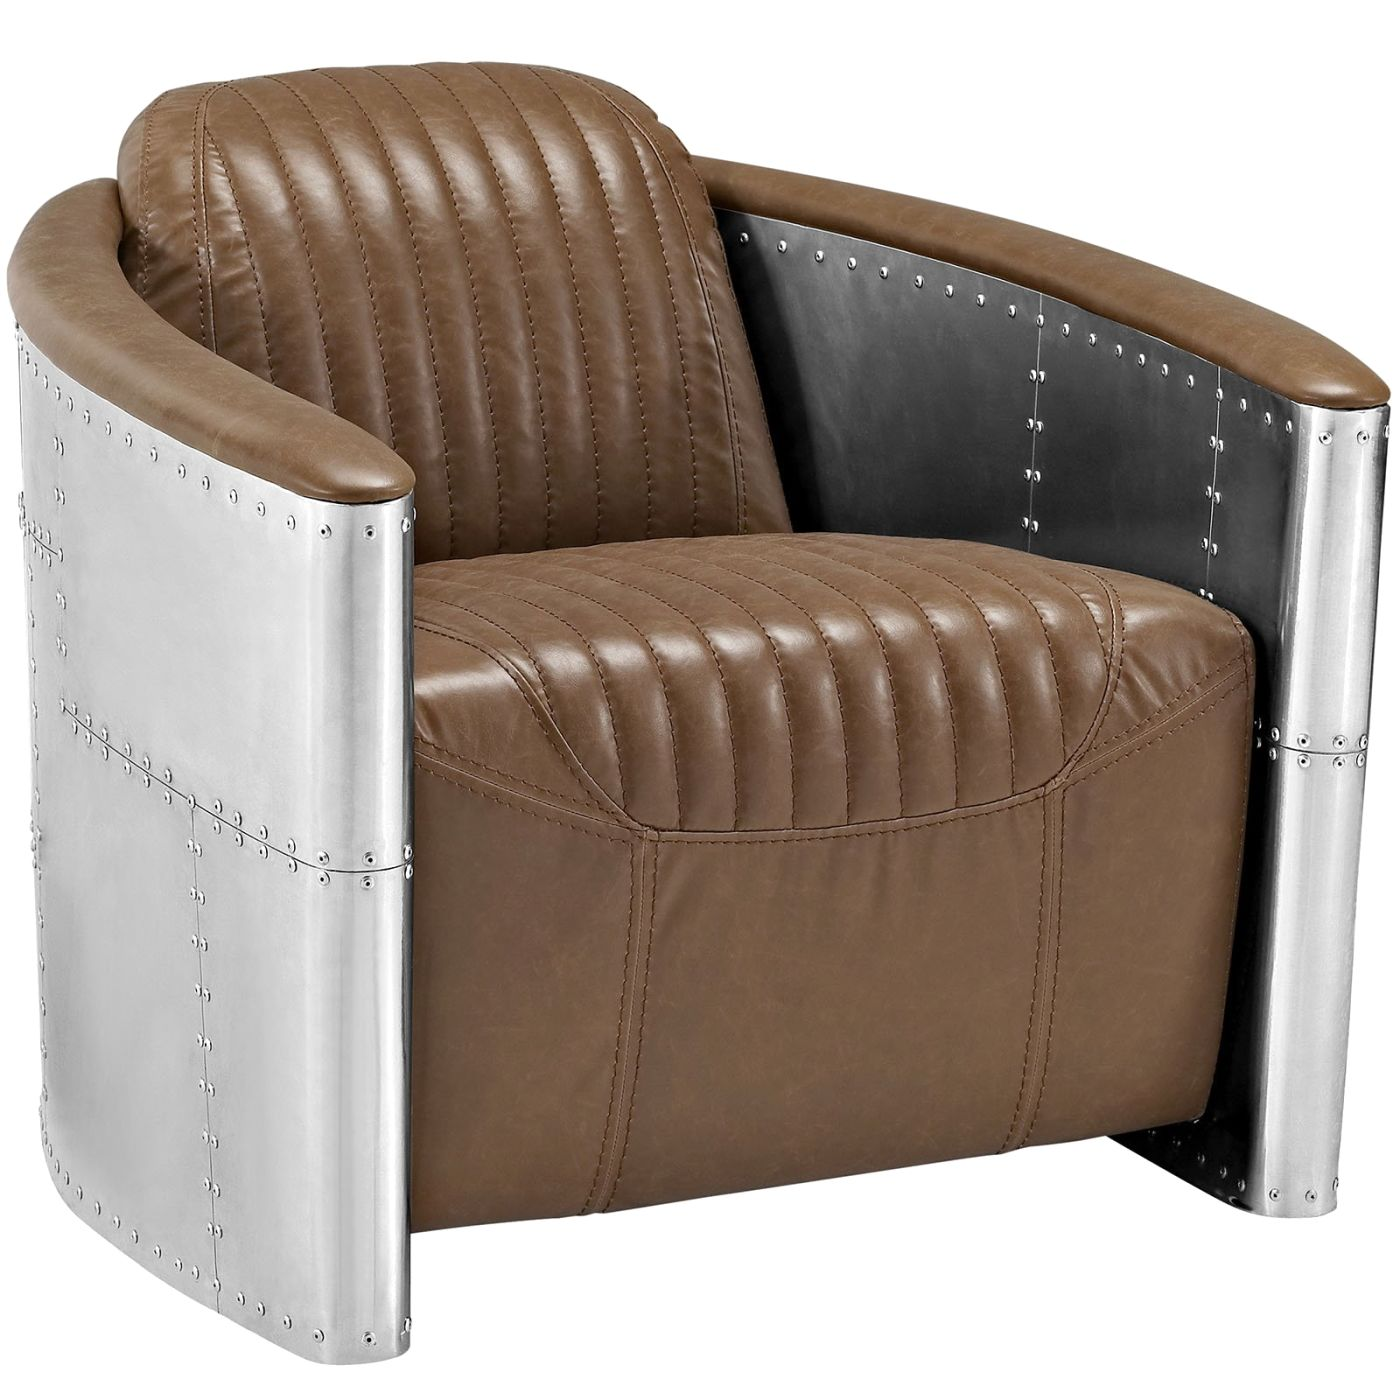 Amazing Visibility Upholstered Faux Leather Lounge Chair Brown ...